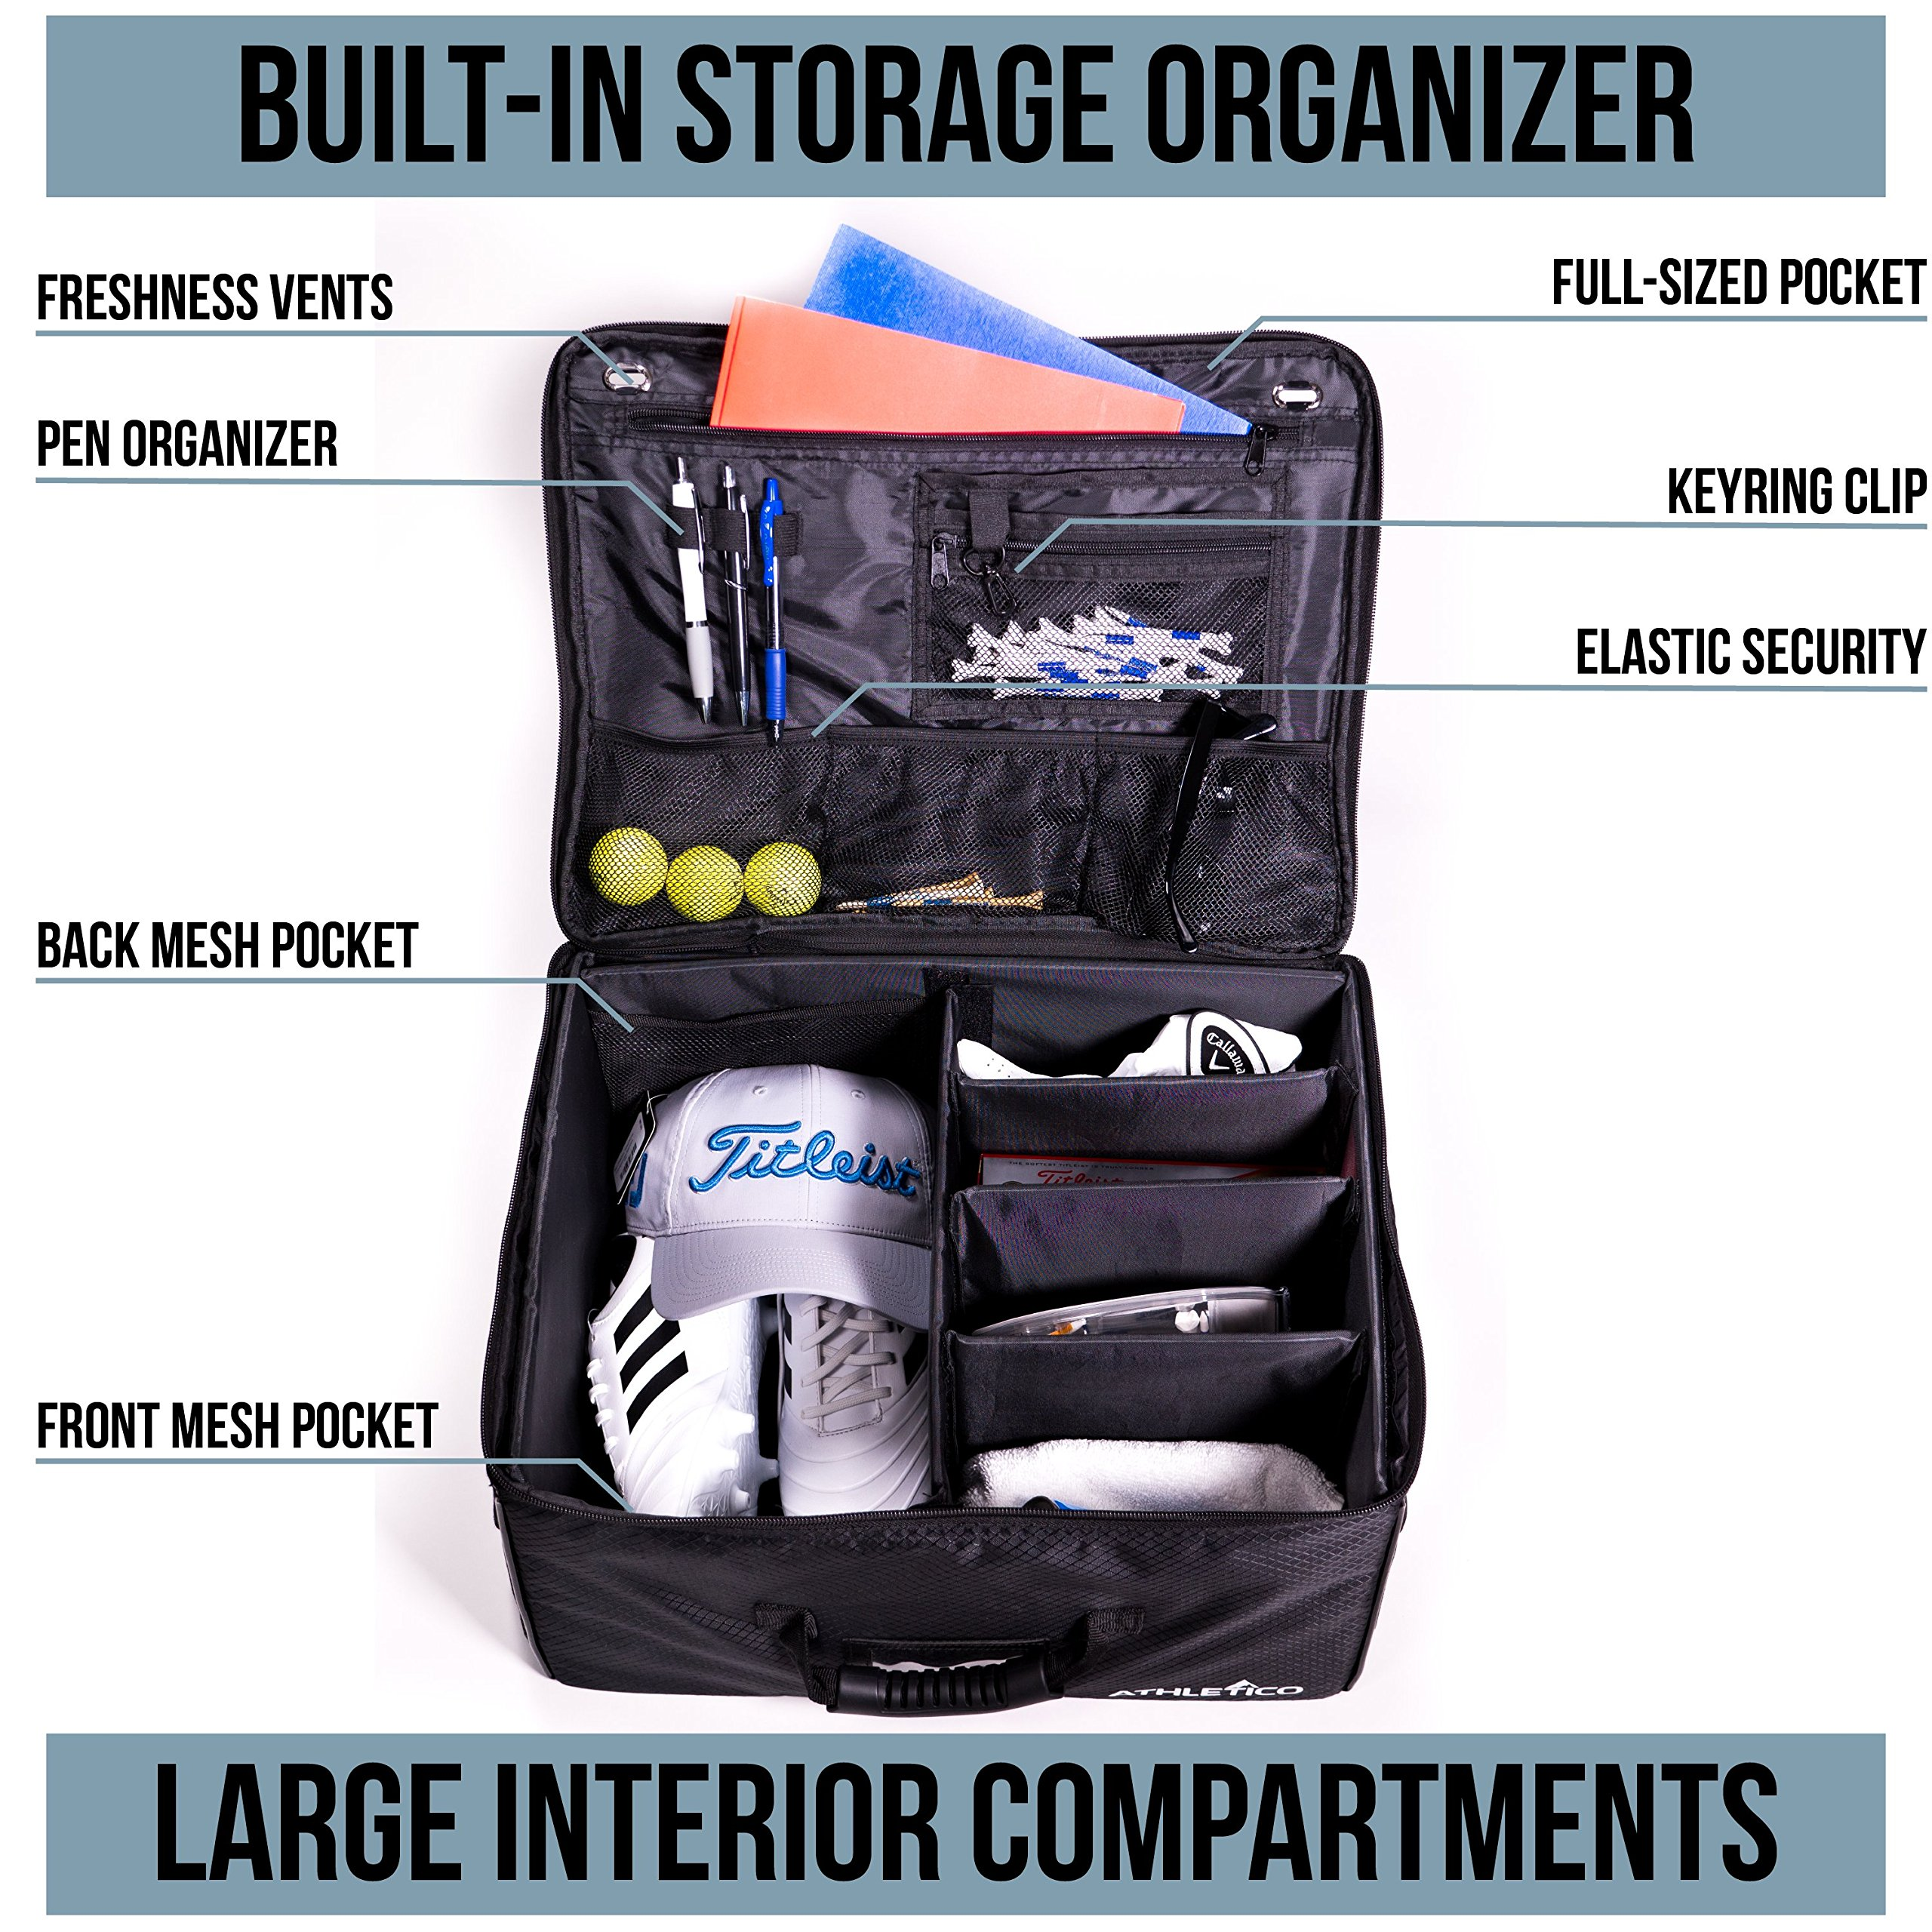 Athletico Golf Trunk Organizer Storage - Car Golf Locker To Store Golf Accessories | Collapsible When Not In Use by Athletico (Image #2)